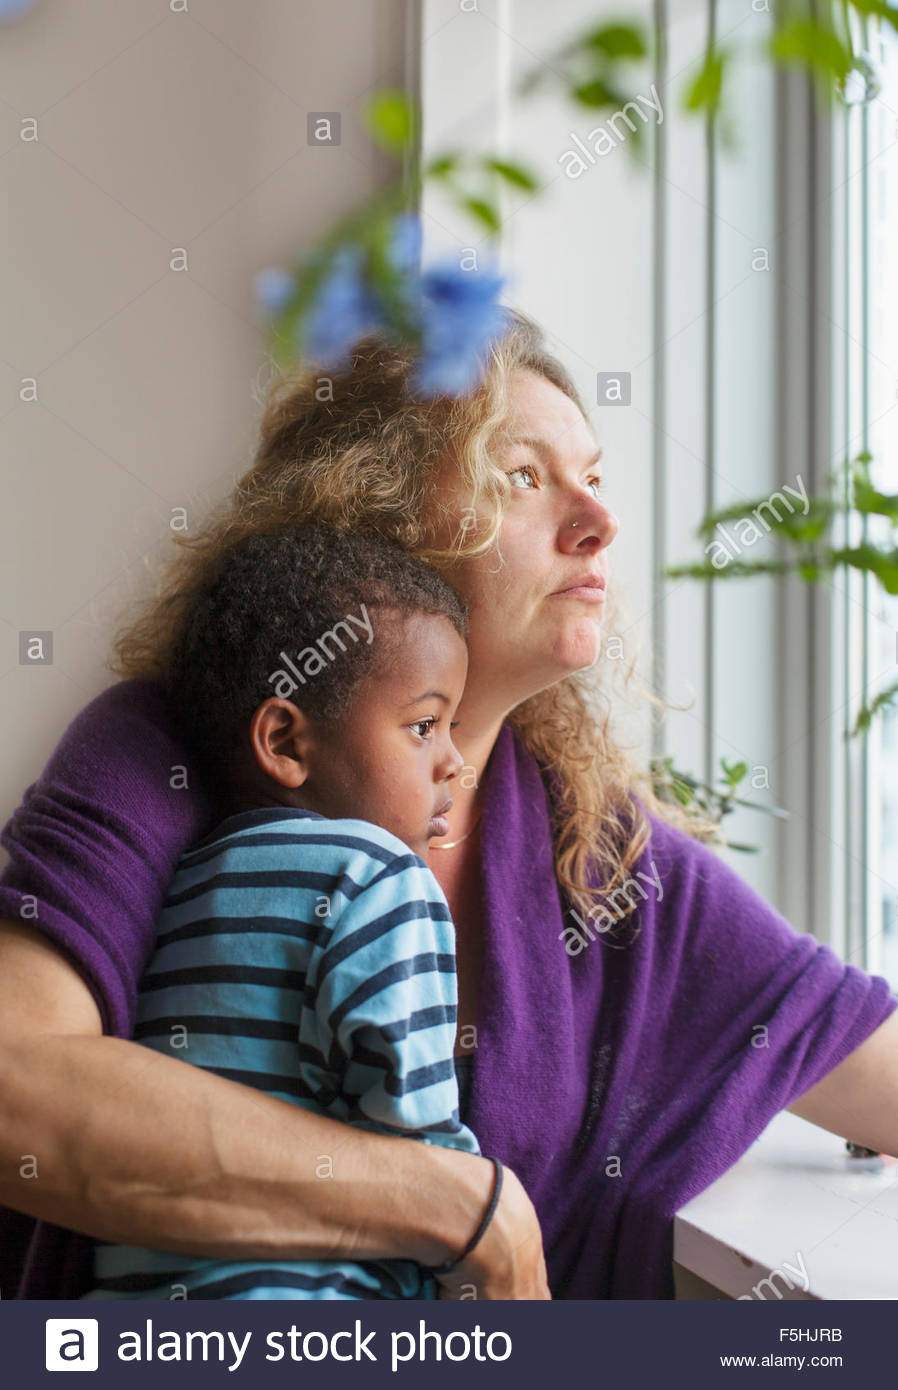 Denmark, Copenhagen, Fredriksberg, Mother and son (4-5) looking through window - Stock Image